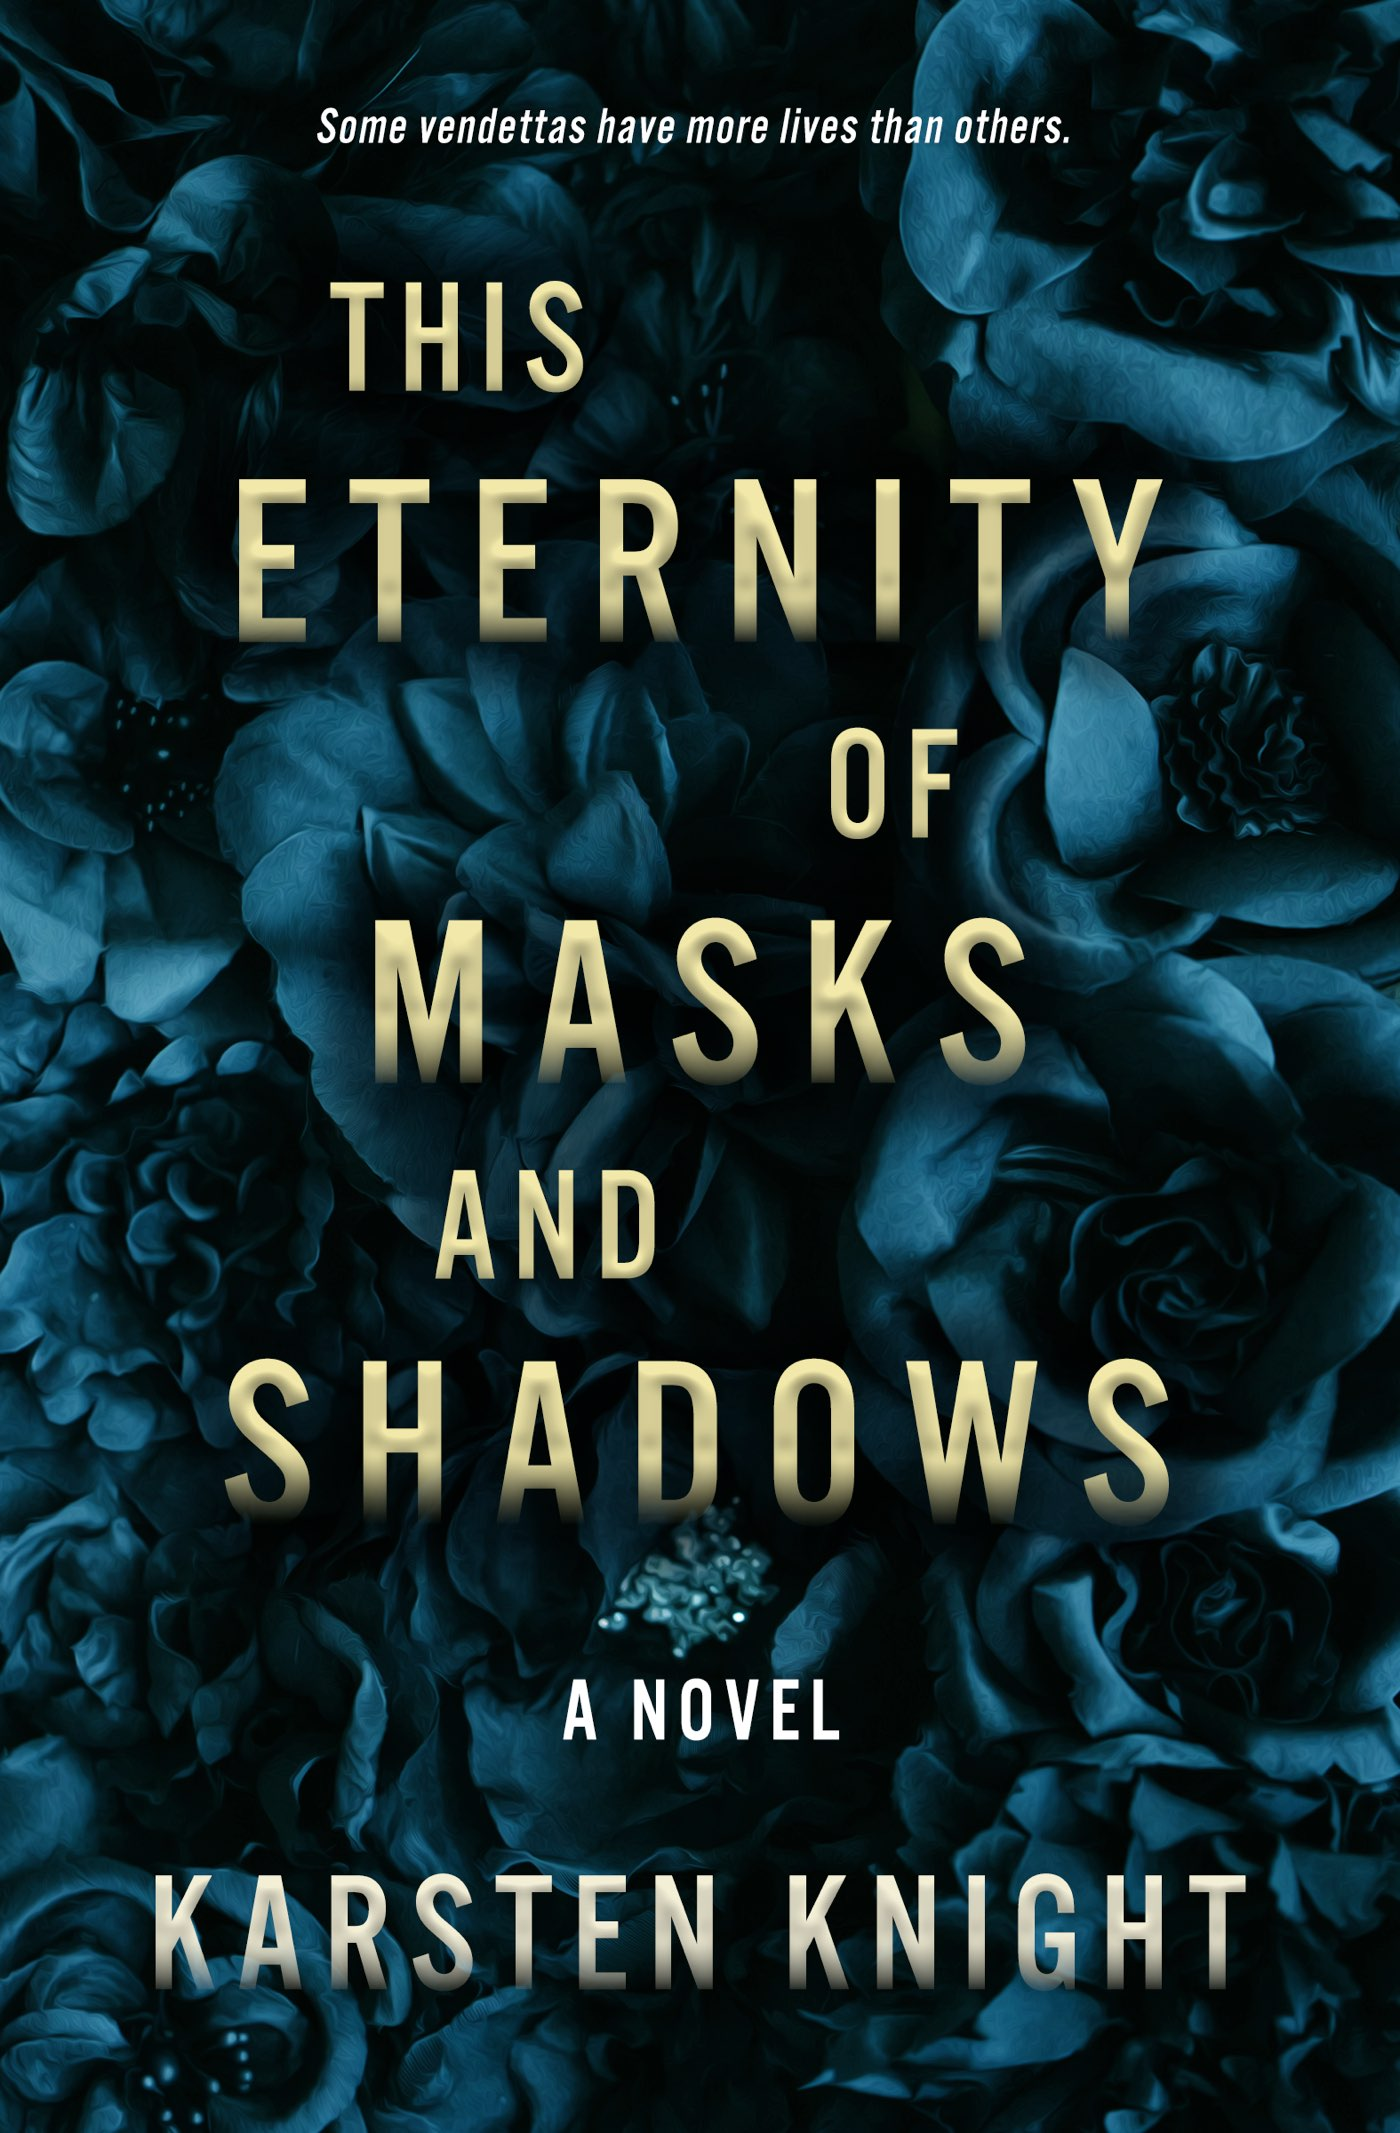 This Eternity of Masks and Shadows